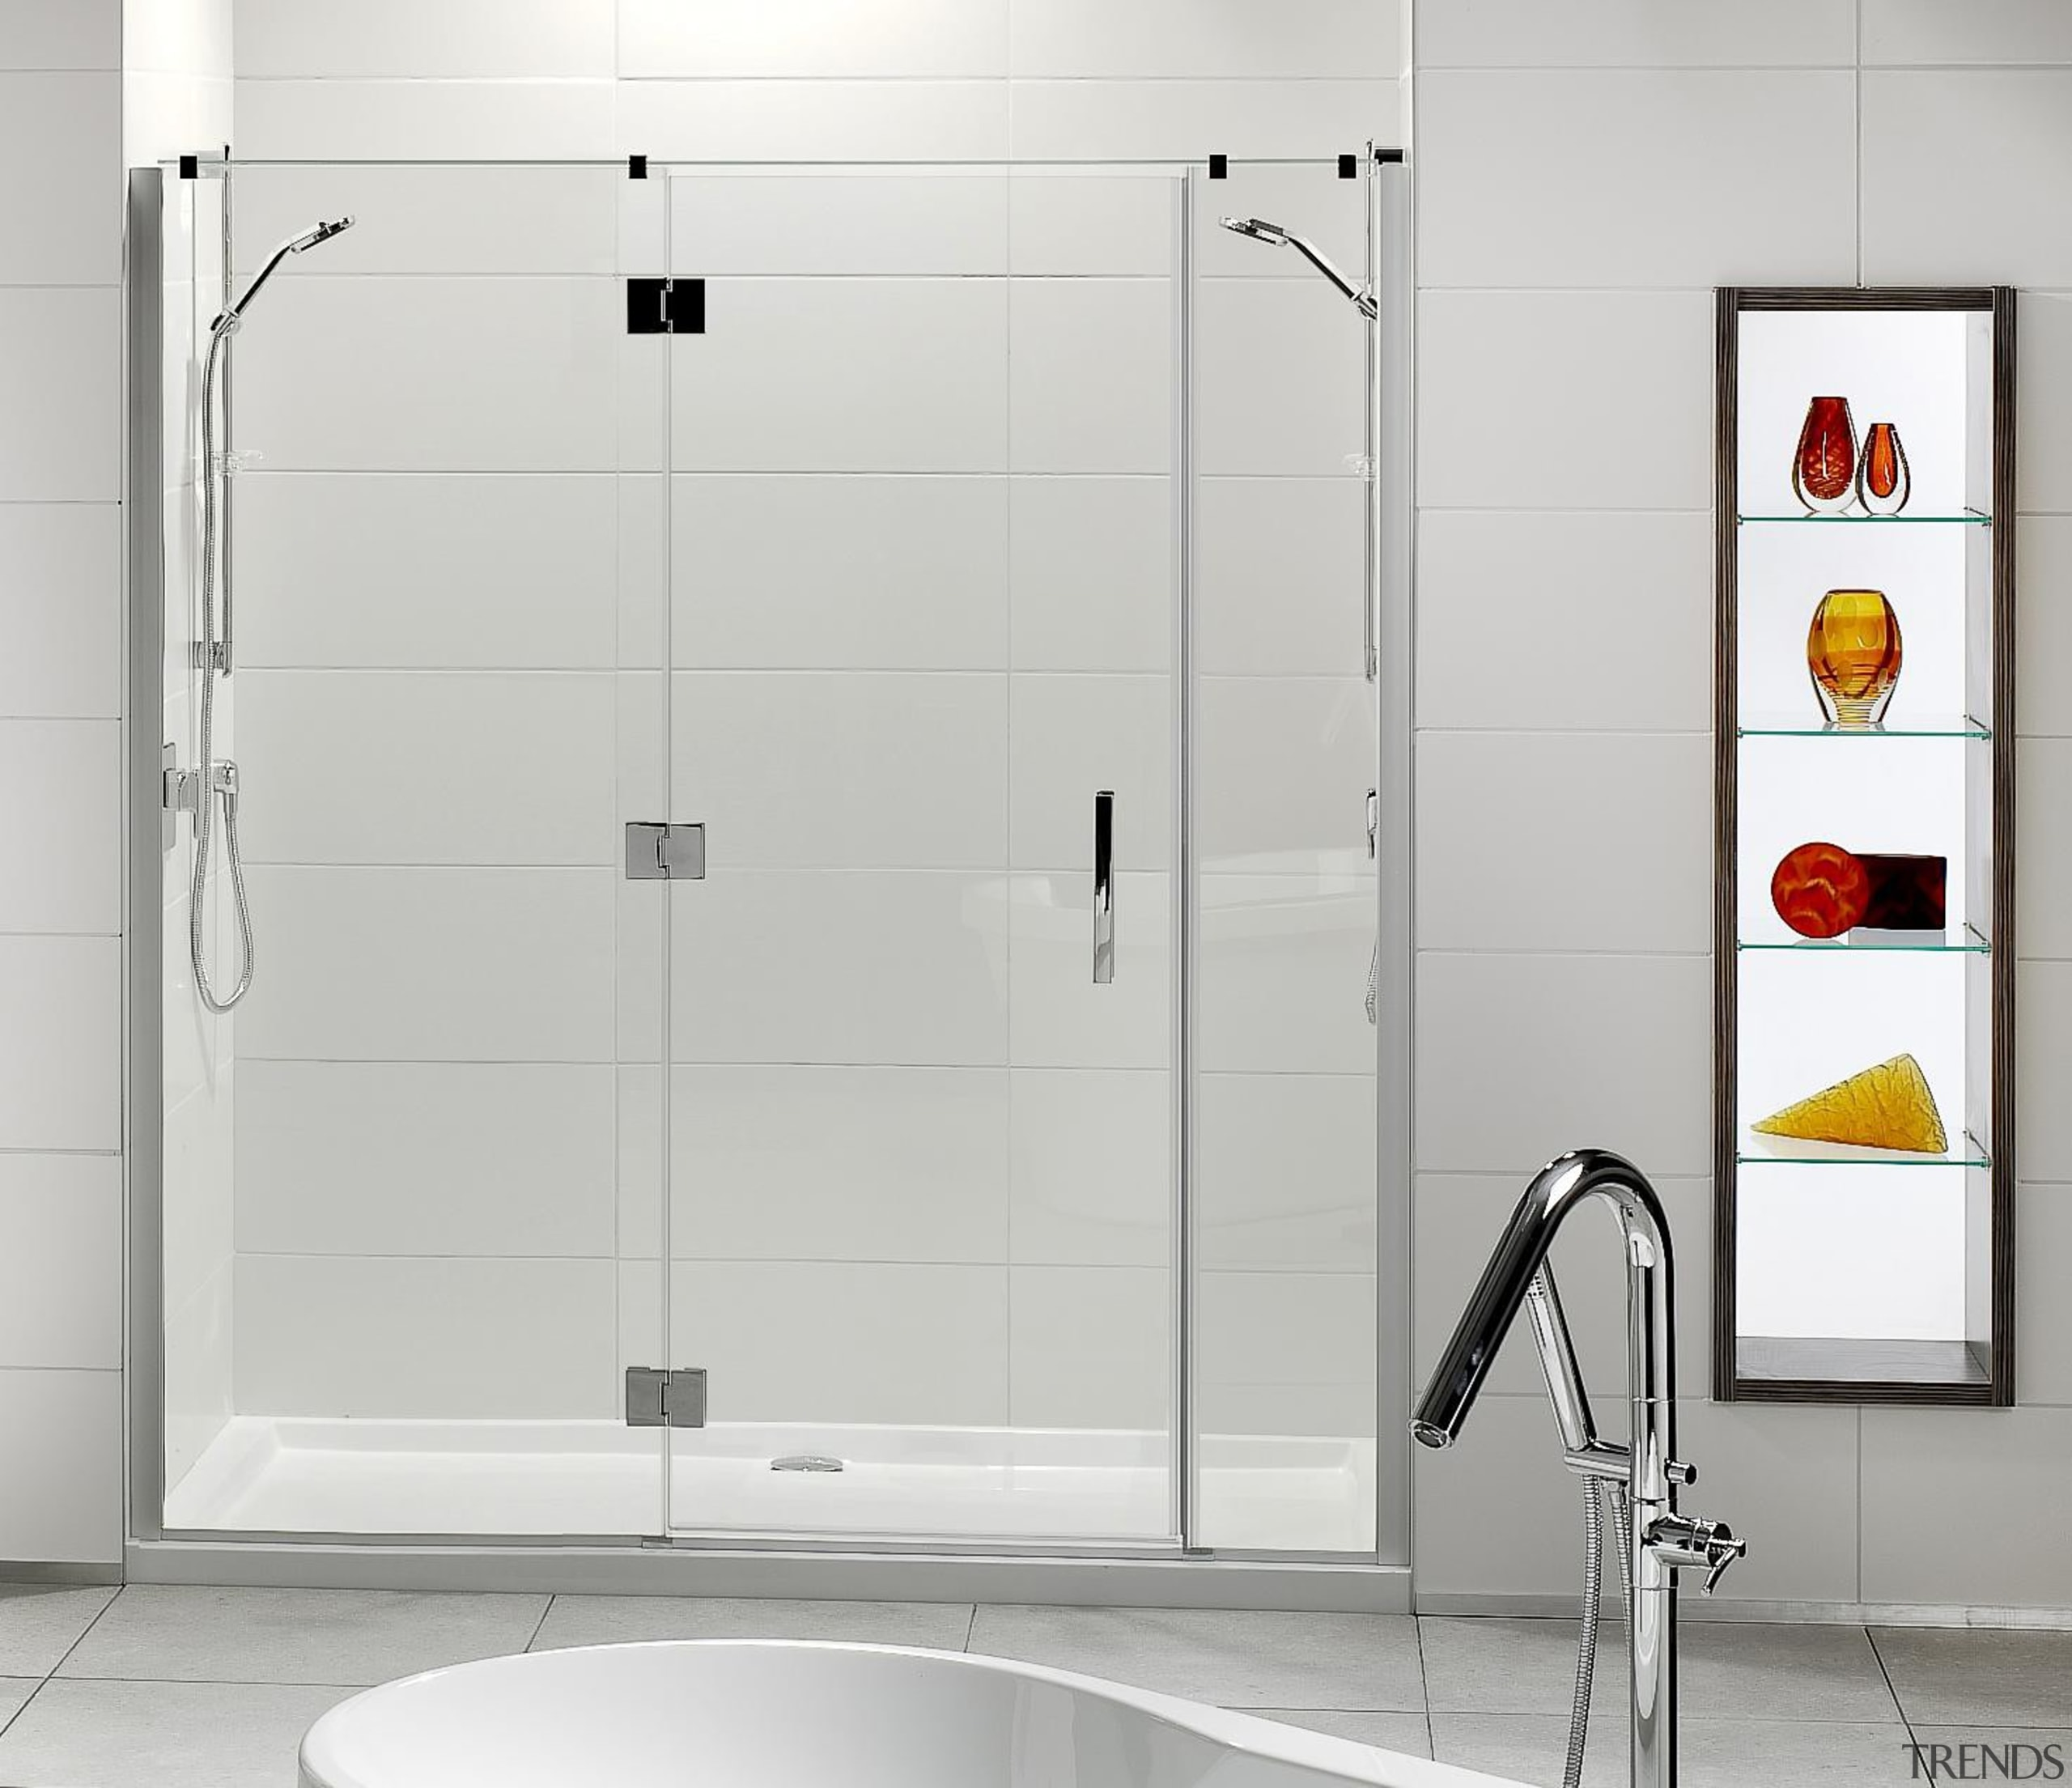 Designed specifically for modern New Zealand bathrooms, the angle, bathroom, plumbing fixture, shower, shower door, tap, white